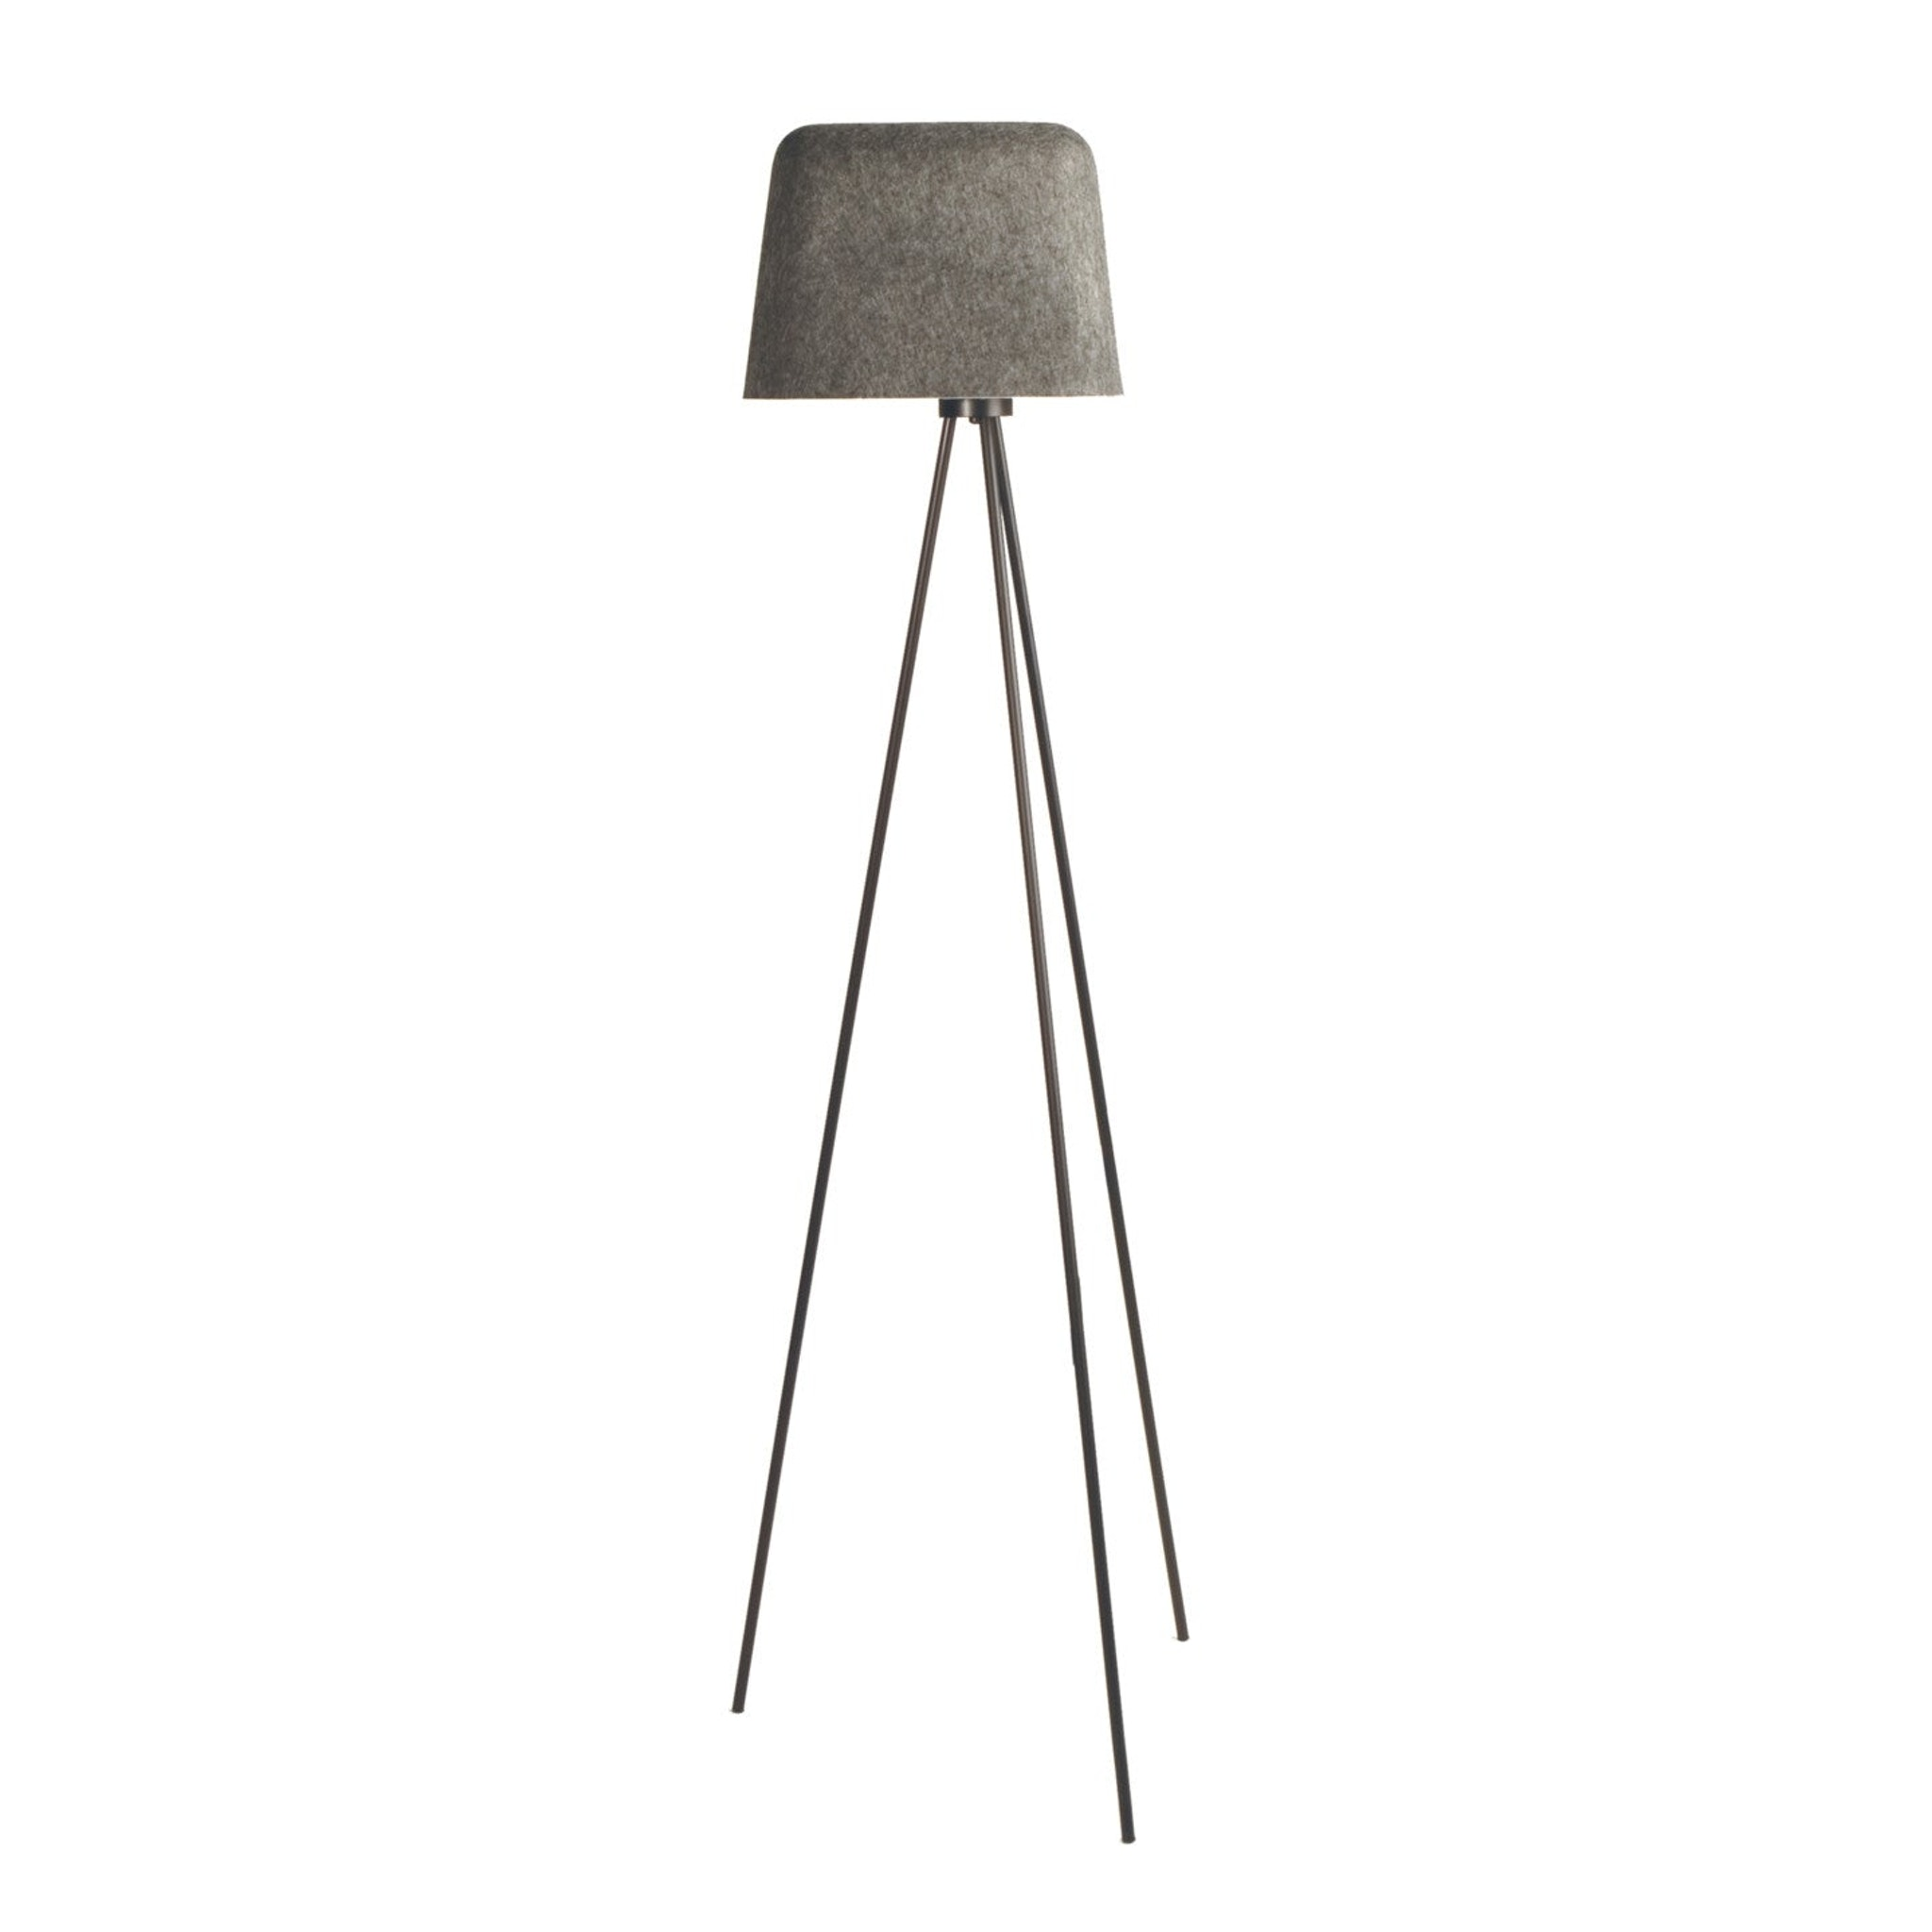 Felt Floor Light by Tom Dixon